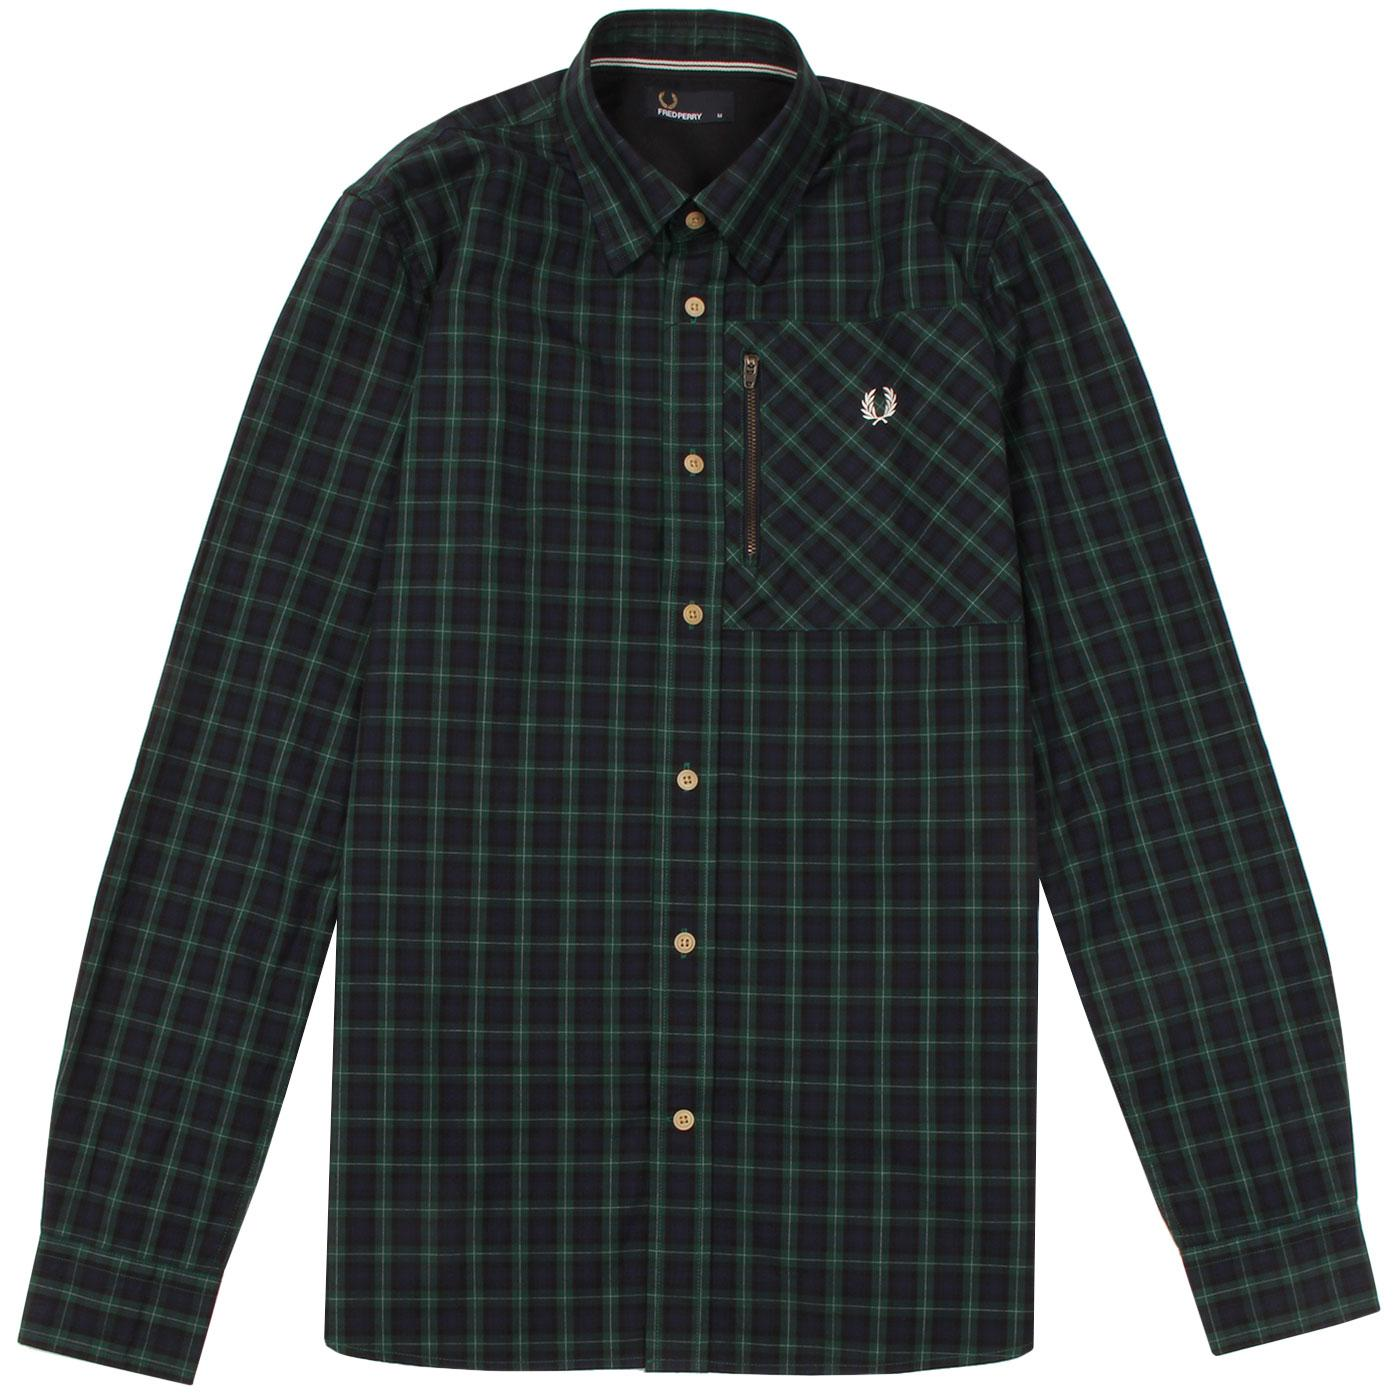 FRED PERRY Men's Retro Lamont Tartan Check Shirt